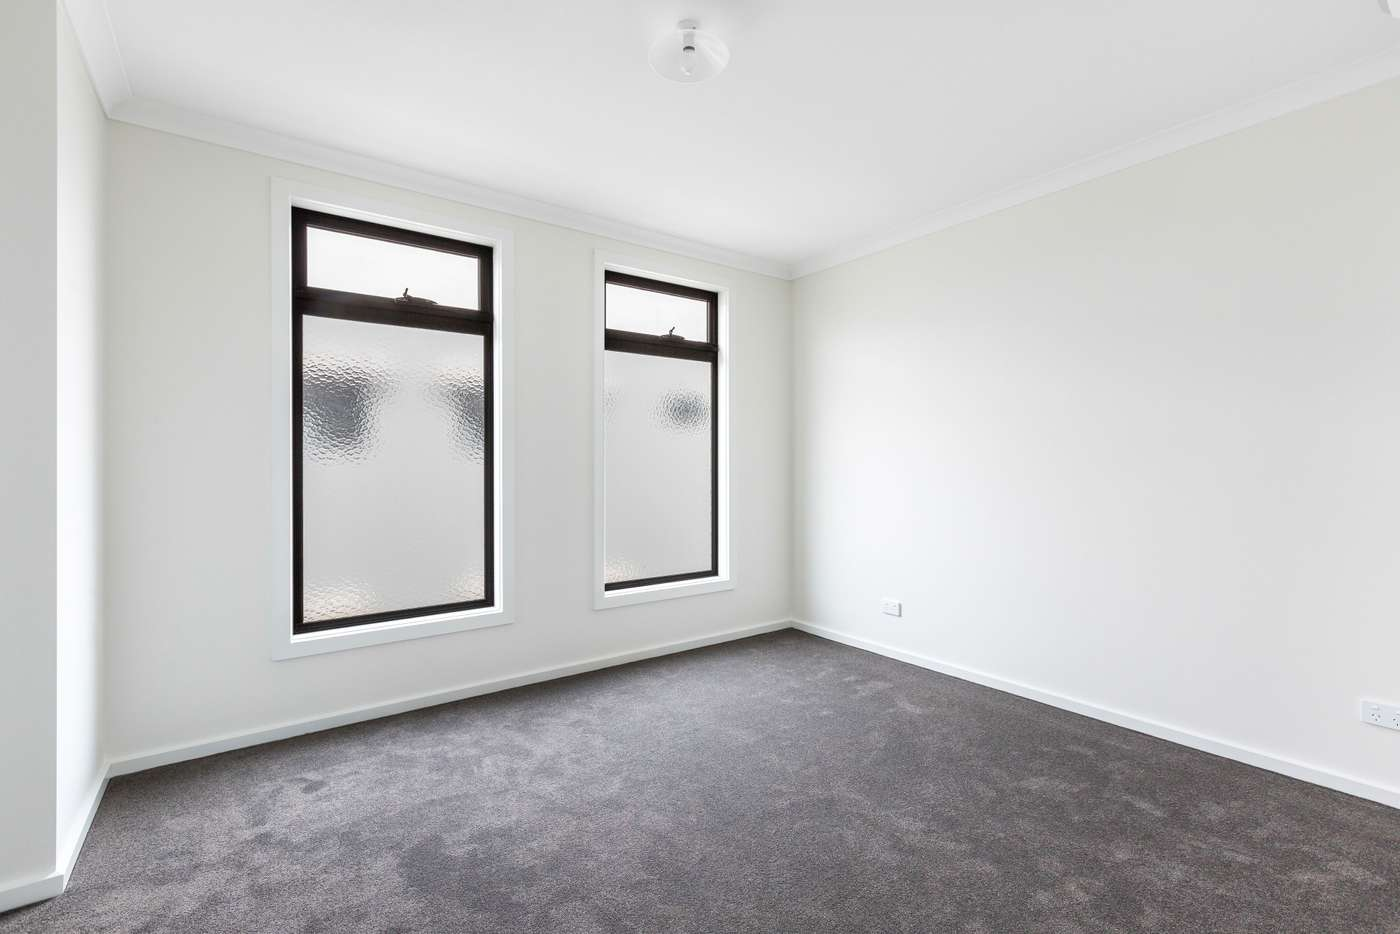 Sixth view of Homely townhouse listing, 13/85 Chapman Avenue, Glenroy VIC 3046